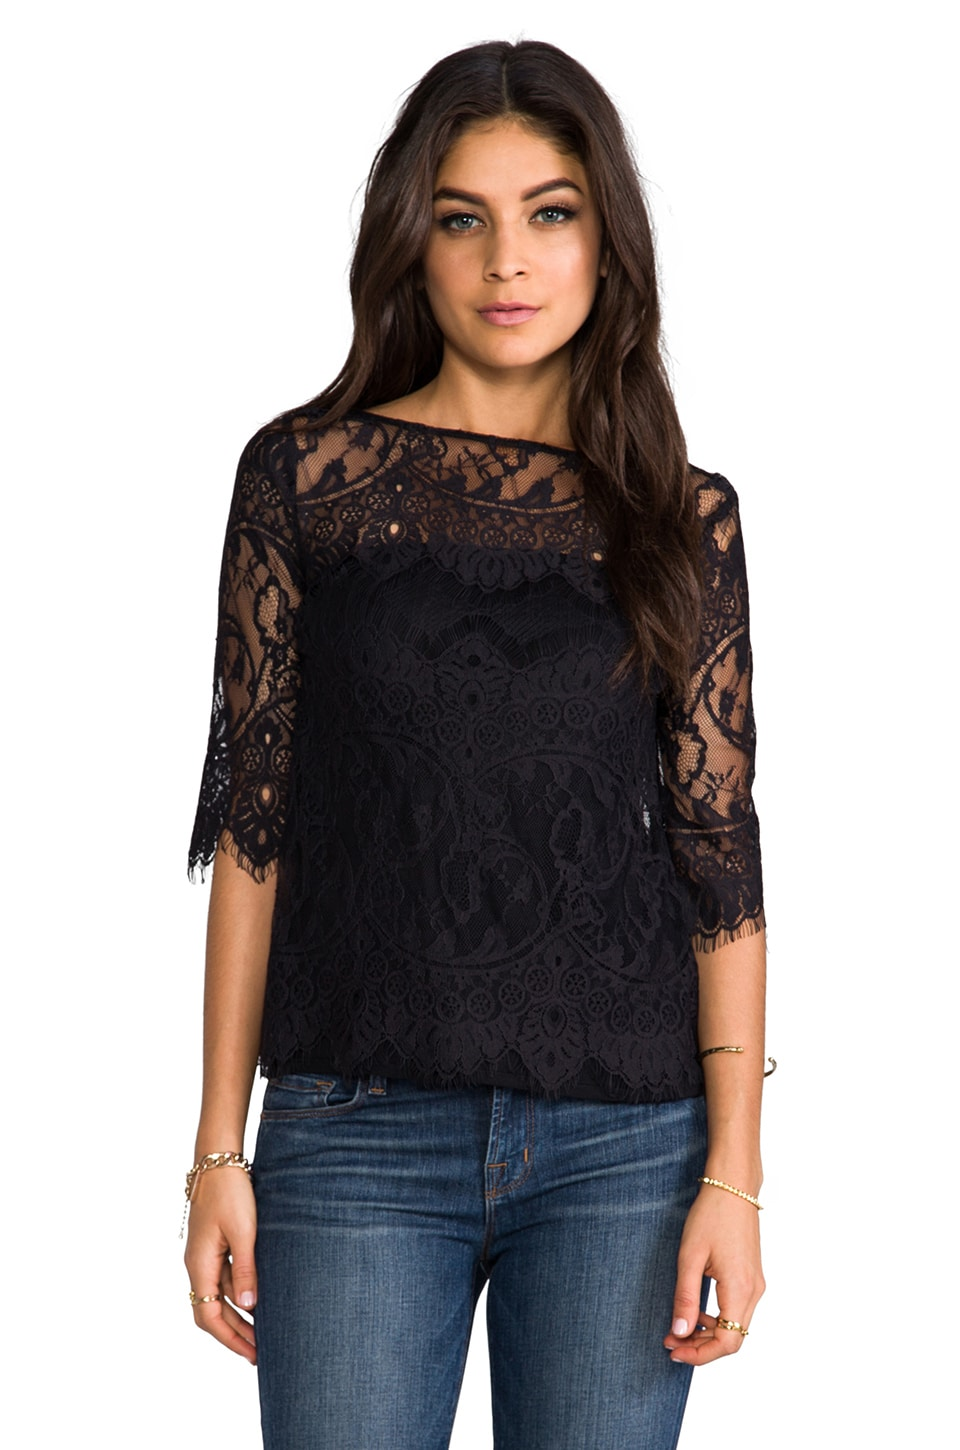 BB Dakota Josette Scallop Lace Top in Black